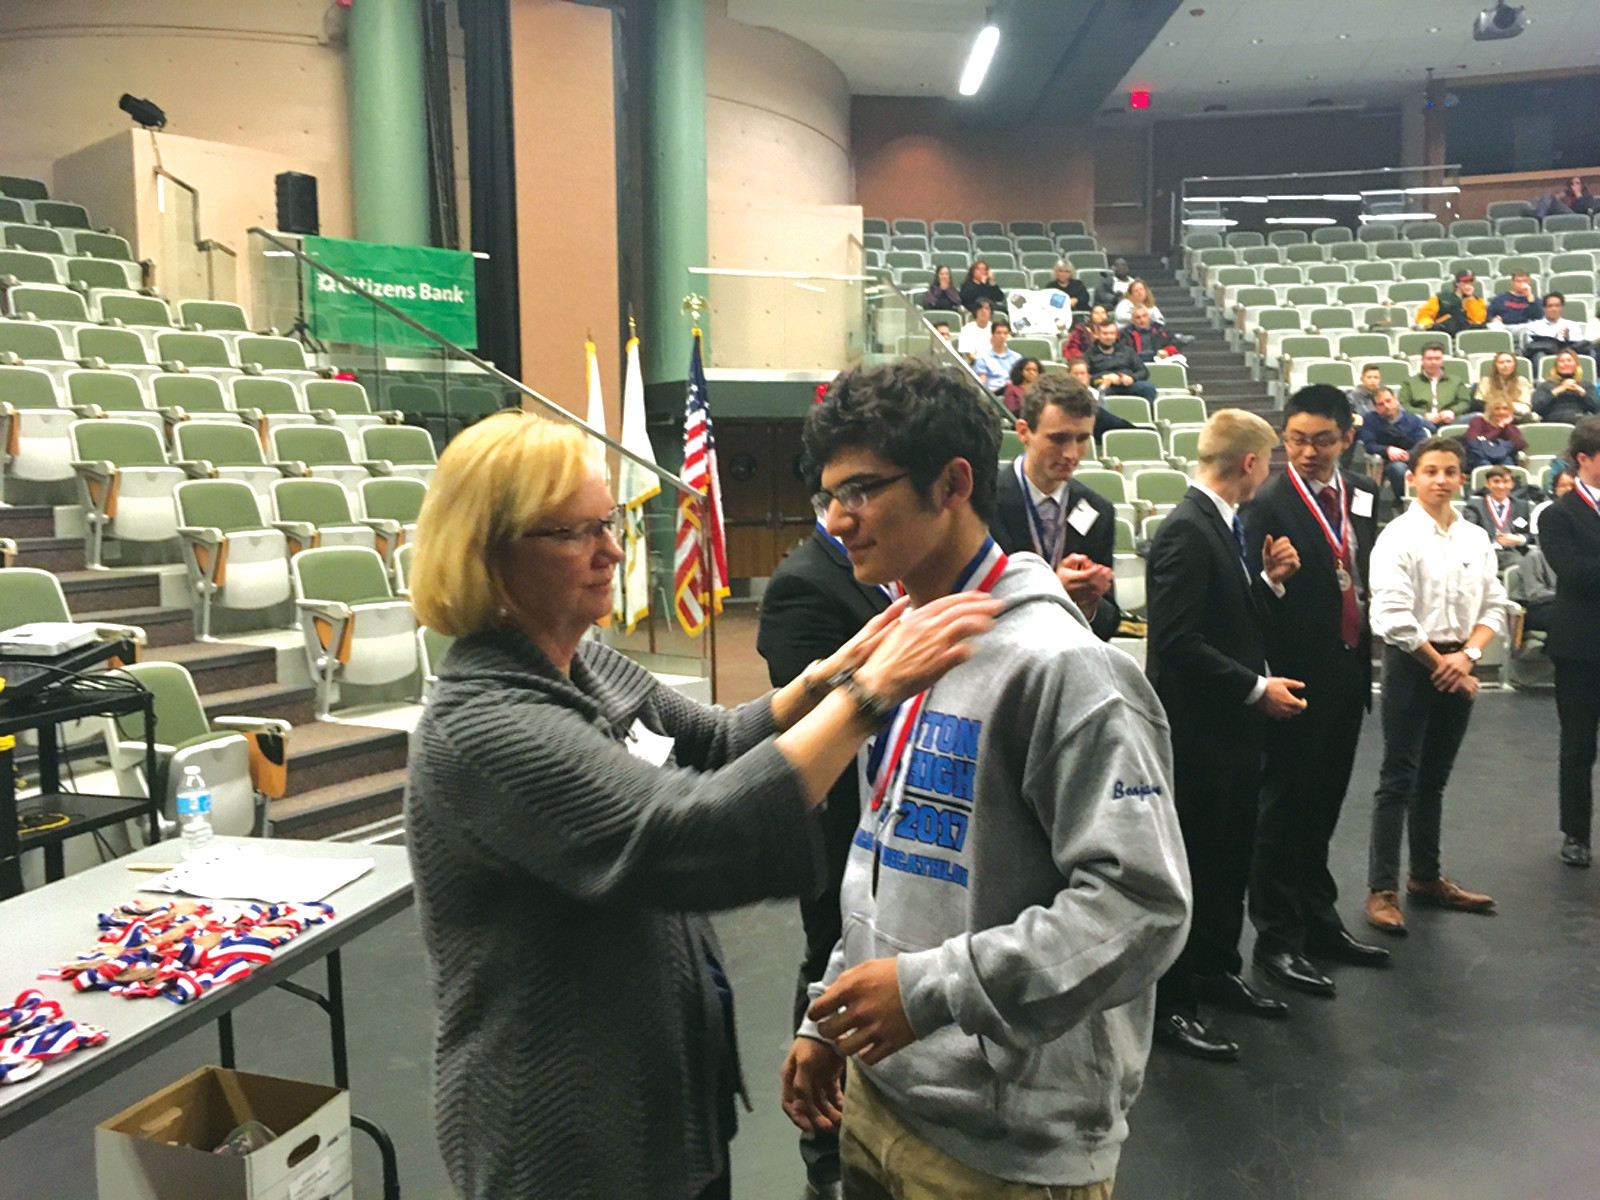 THREE MEDALS: Junior Benjamin Budway is presented with one of his medals from Decathlon board member Paula Pratt. Budway earned three medals at the competition.